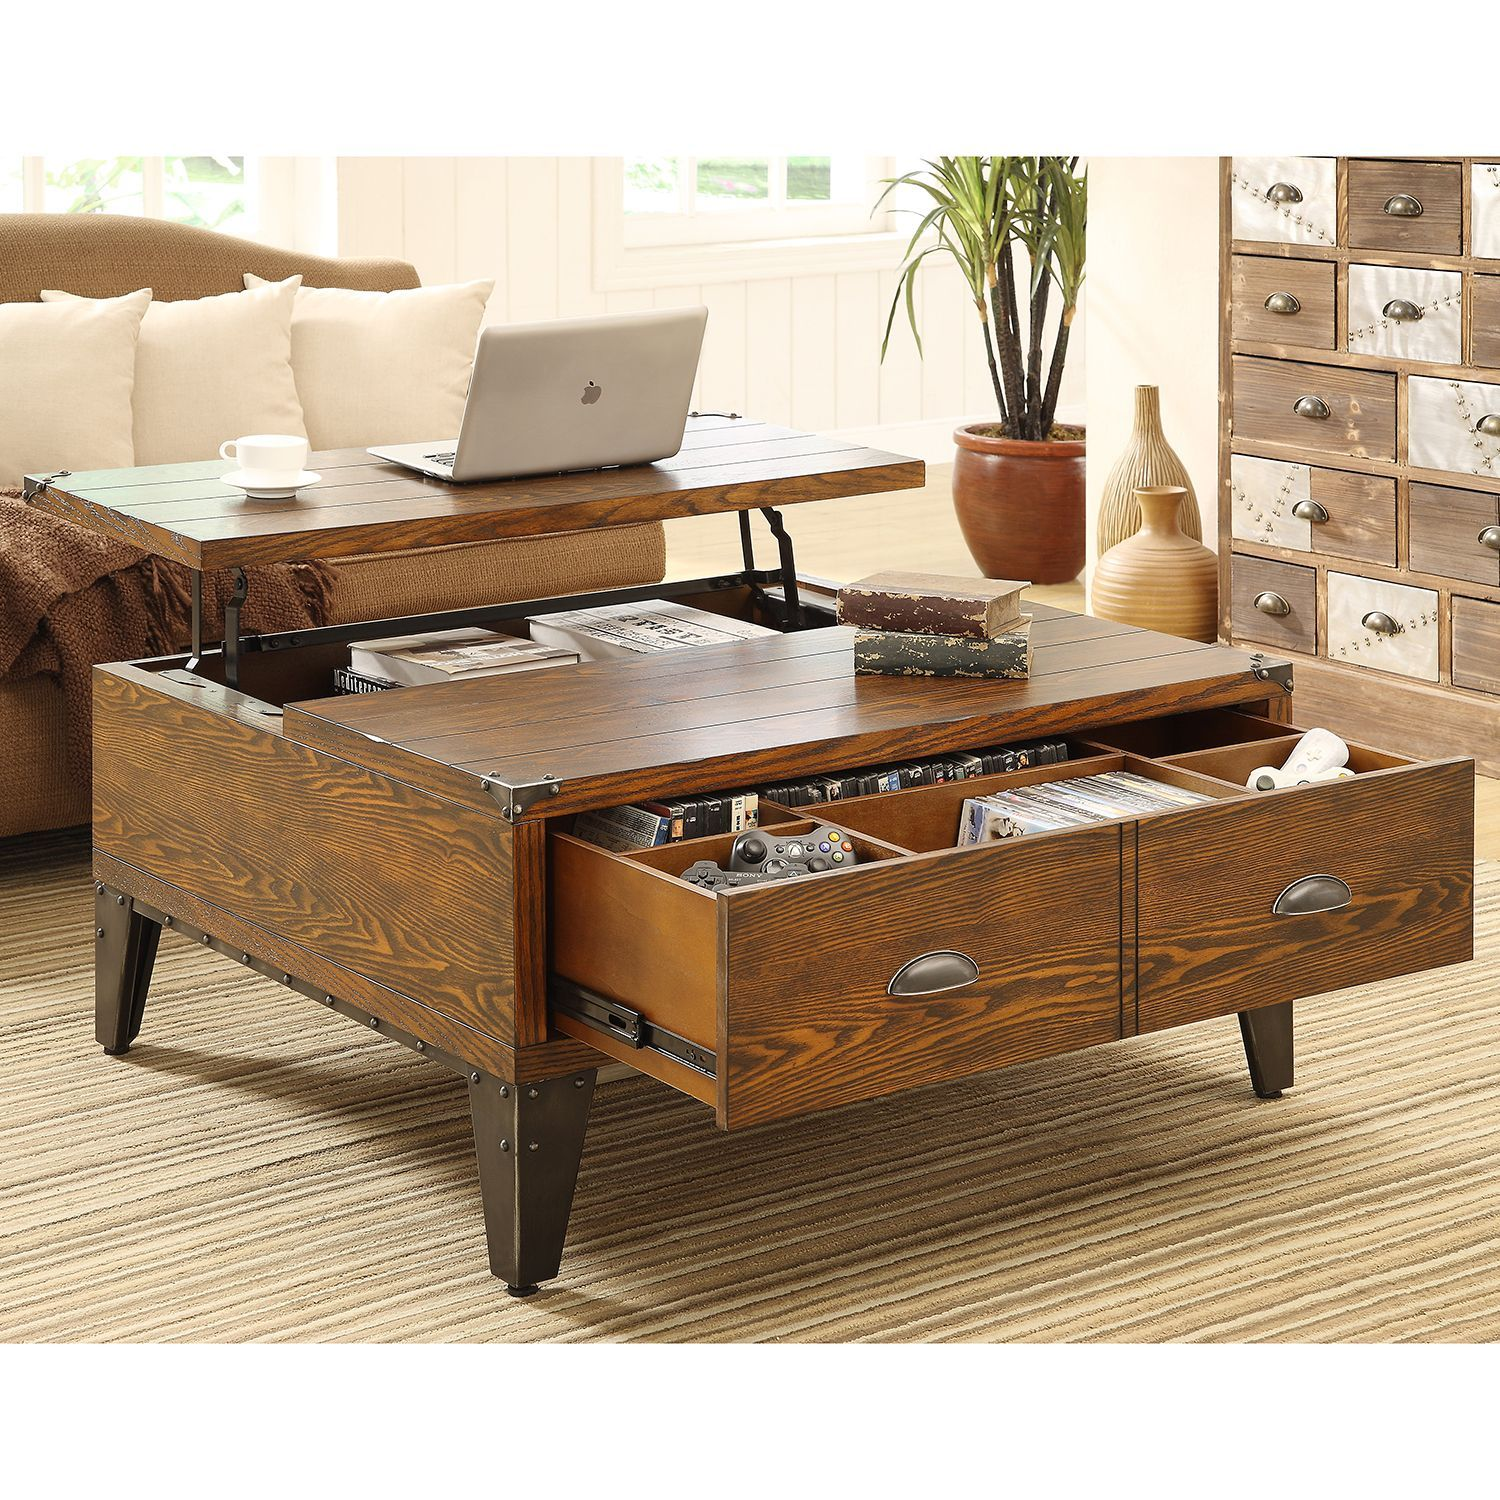 Phebe Modern Oak Timber Coffee Table Square Timber Top: Wellington Lift Top Coffee Table - Sam's Club